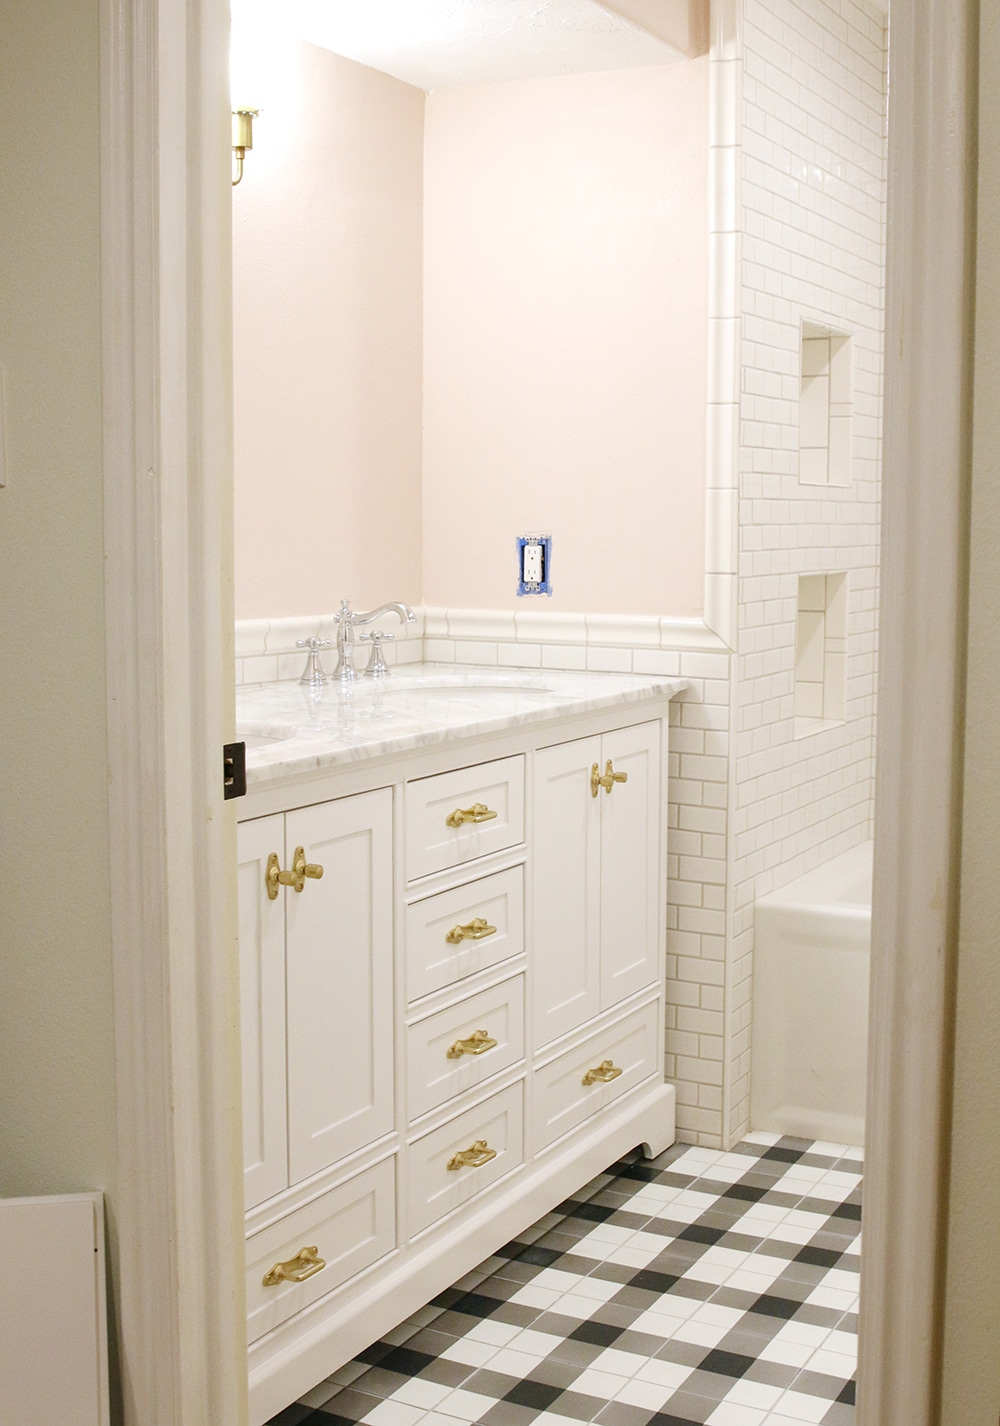 Choosing a Paint Color for Our Small, Windowless Bathroom - Chris ...